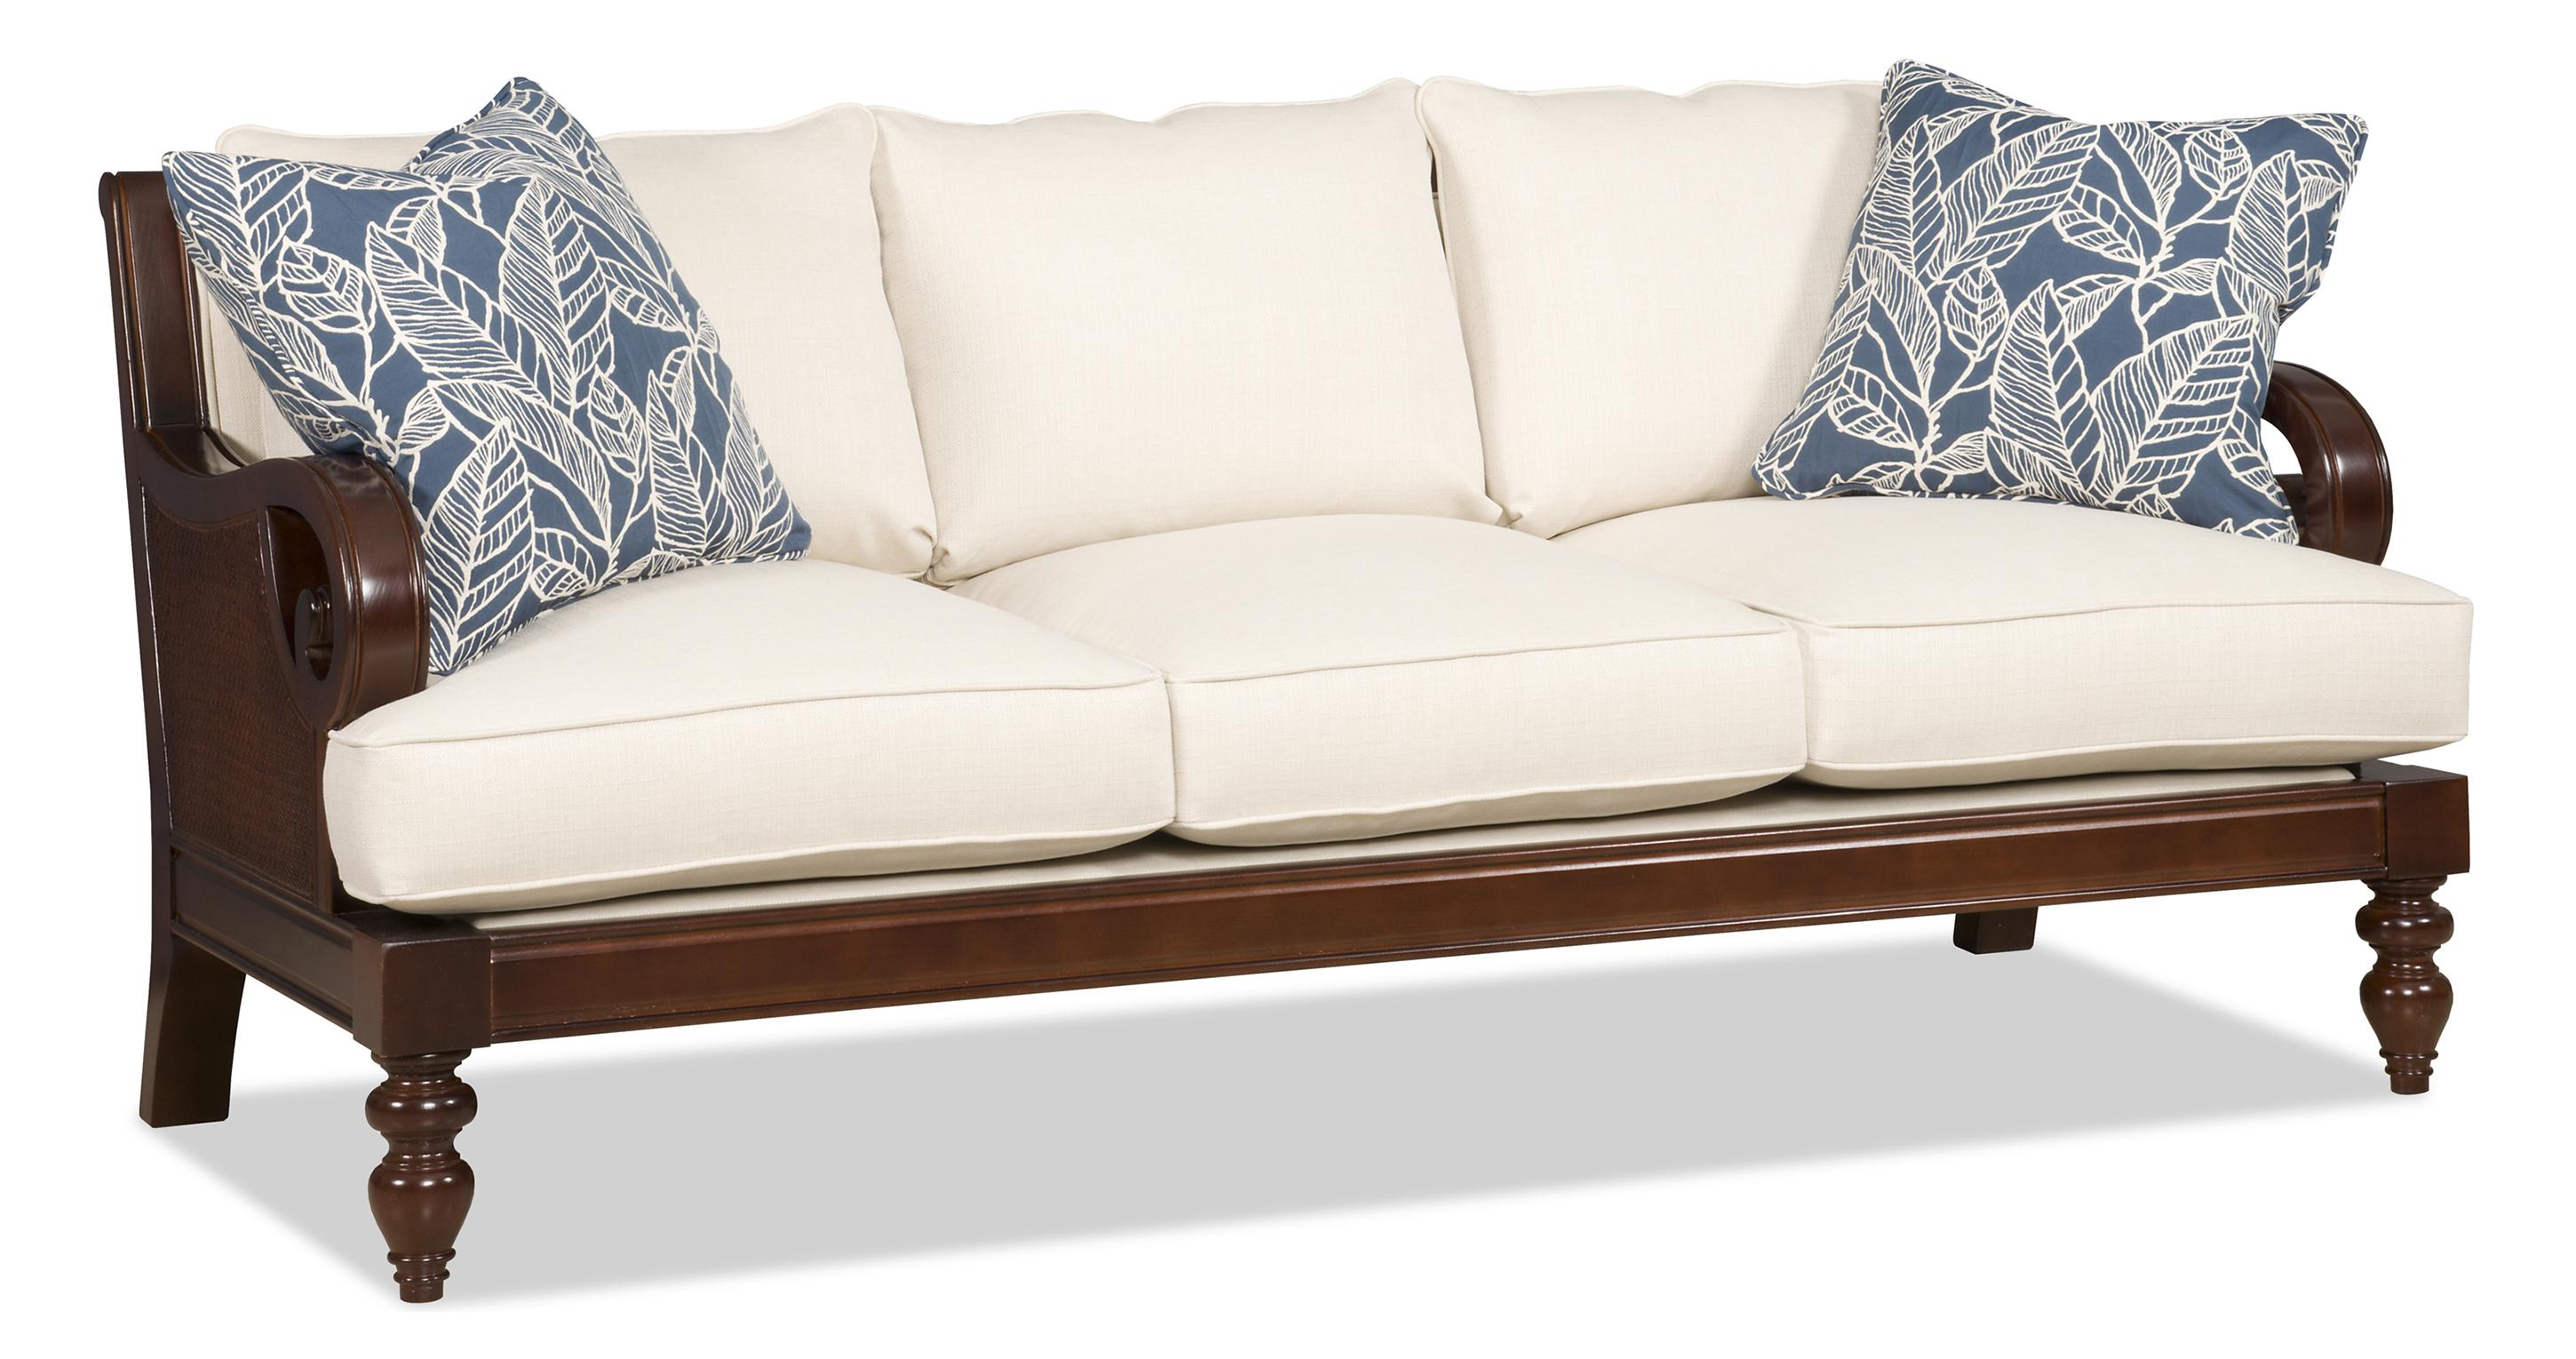 sofa with wood corrigan studio luther mid century modern vintage sofa with wood thesofa. Black Bedroom Furniture Sets. Home Design Ideas